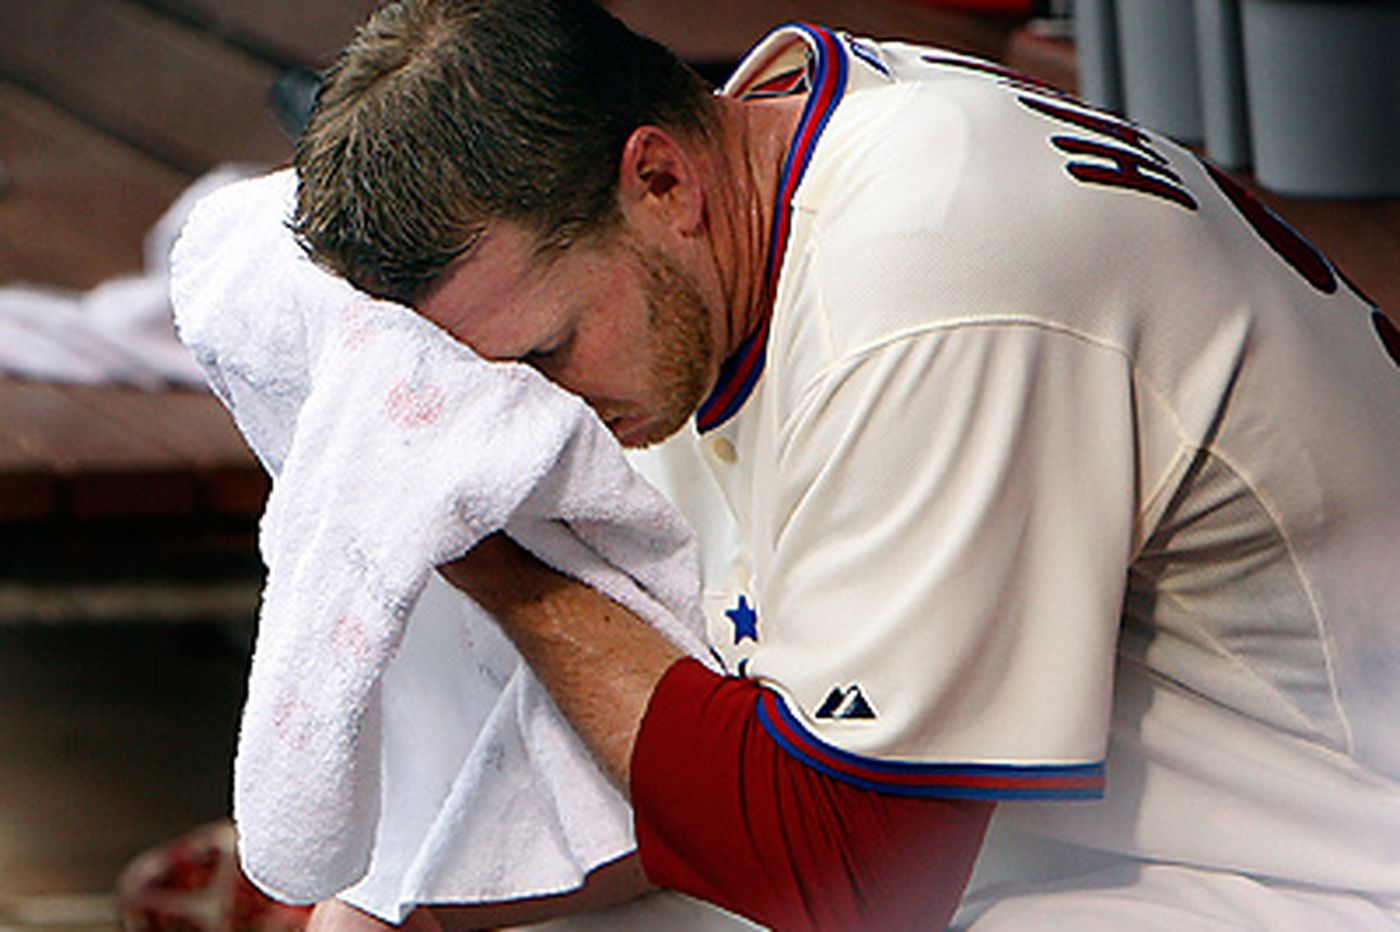 Halladay gets roughed up in Phils' loss